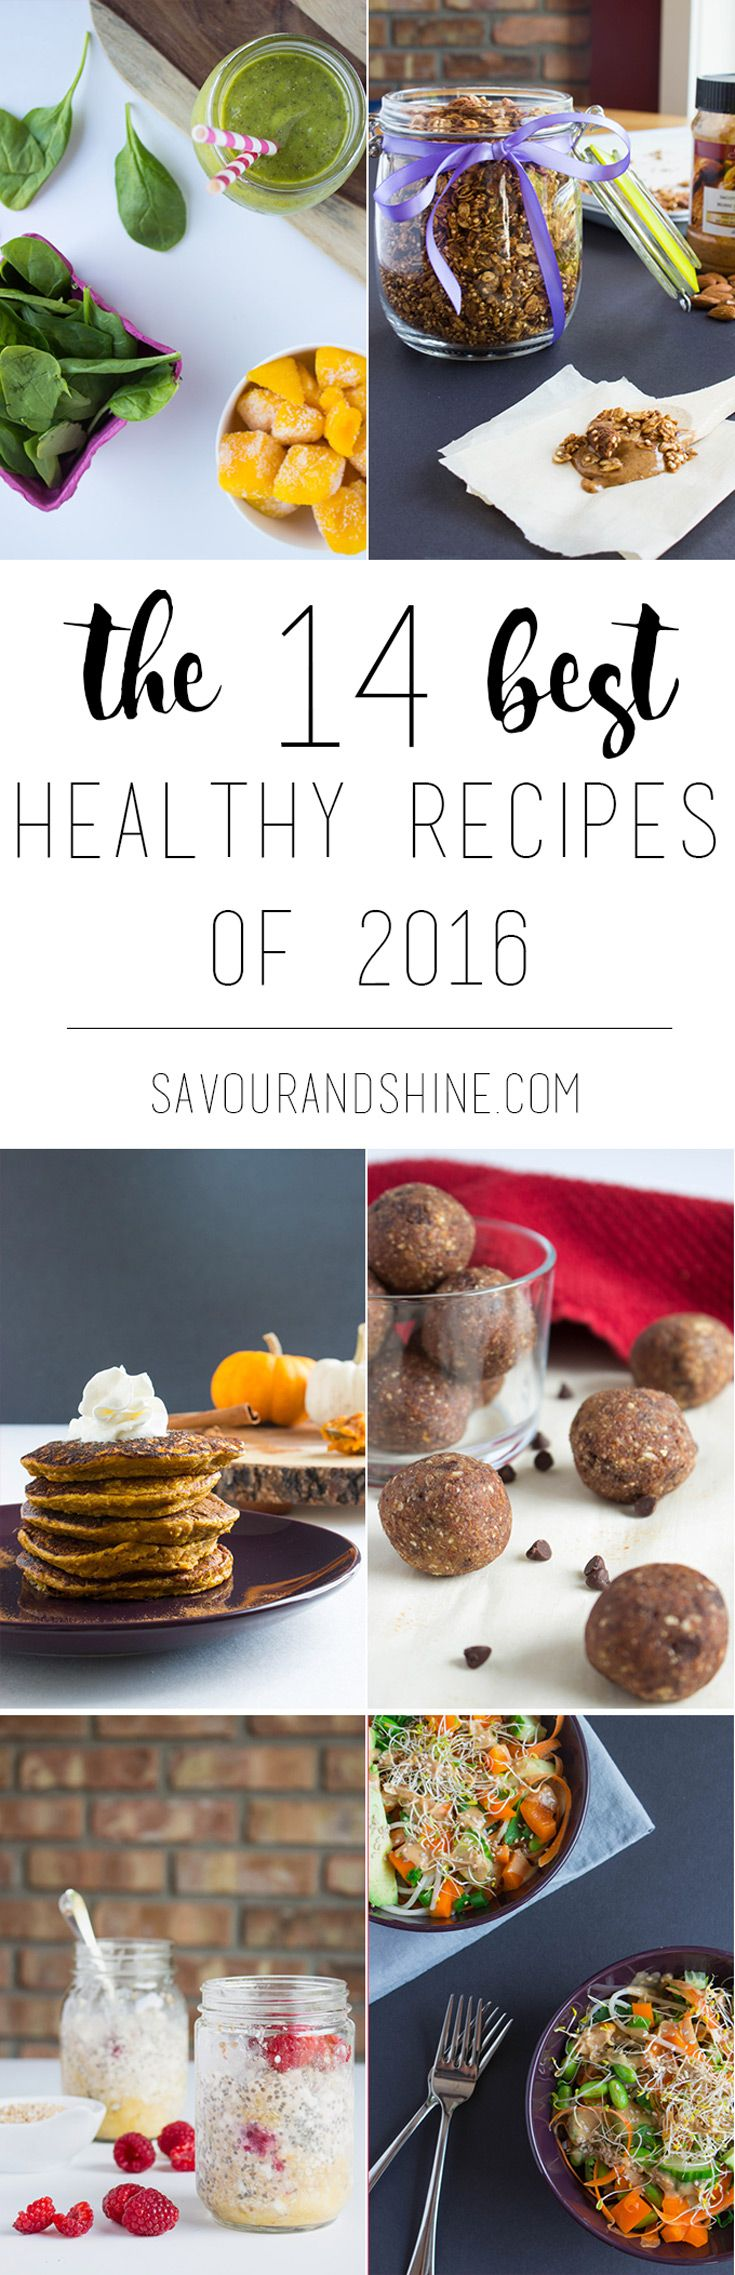 The best healthy recipes from 2016.  Breakfast ideas, bowls, snacks, and healthy desserts! Pin for later, or click through to grab them all! --> bit.ly/2016bestrecipes